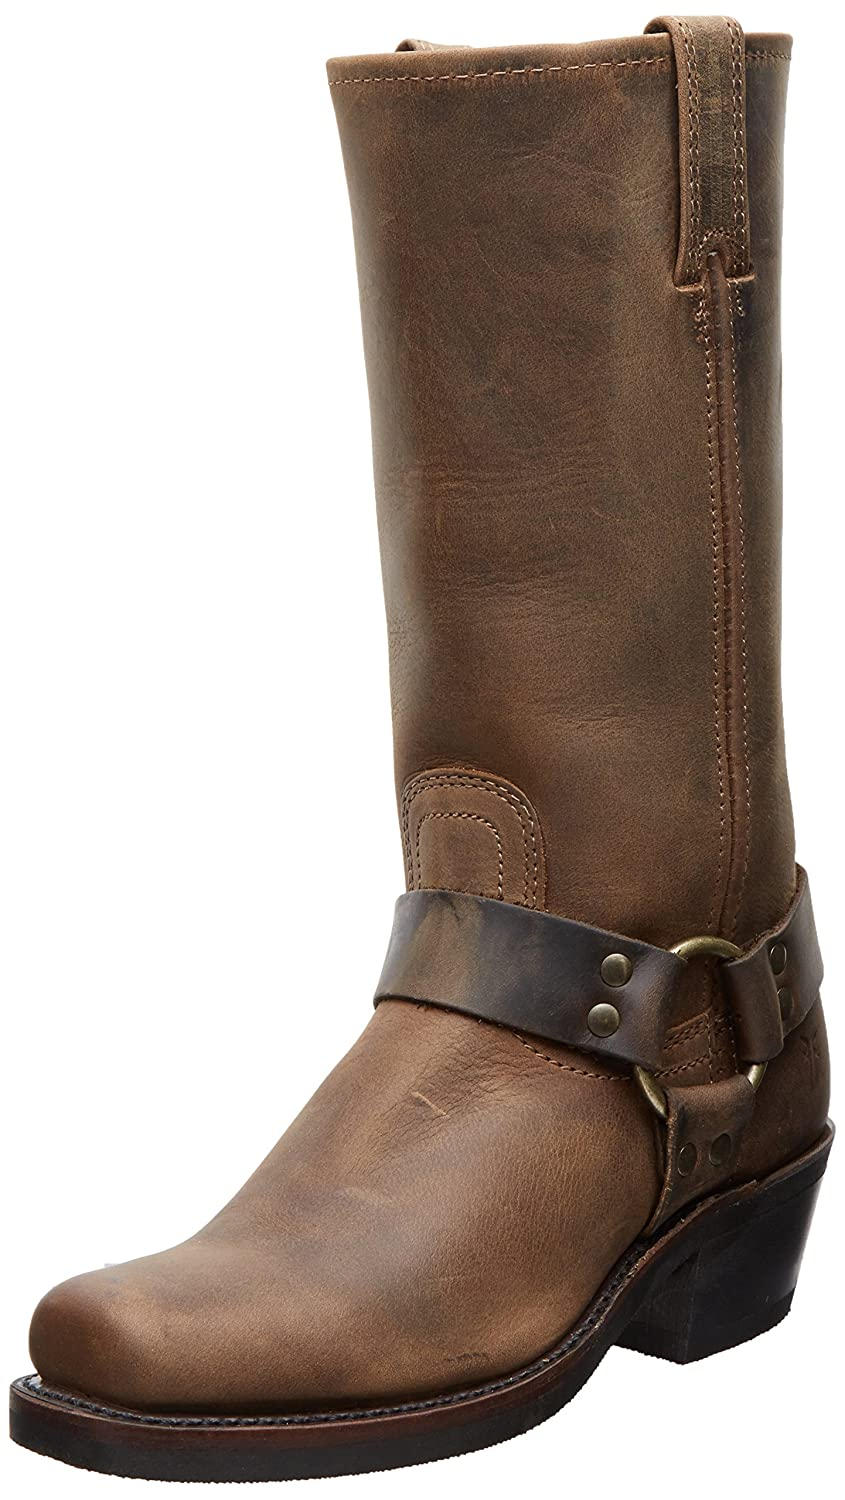 FRYE Women's Harness 12R Boot B000IV5E4S 6.5 B(M) US|Tan Crazy Horse-77300